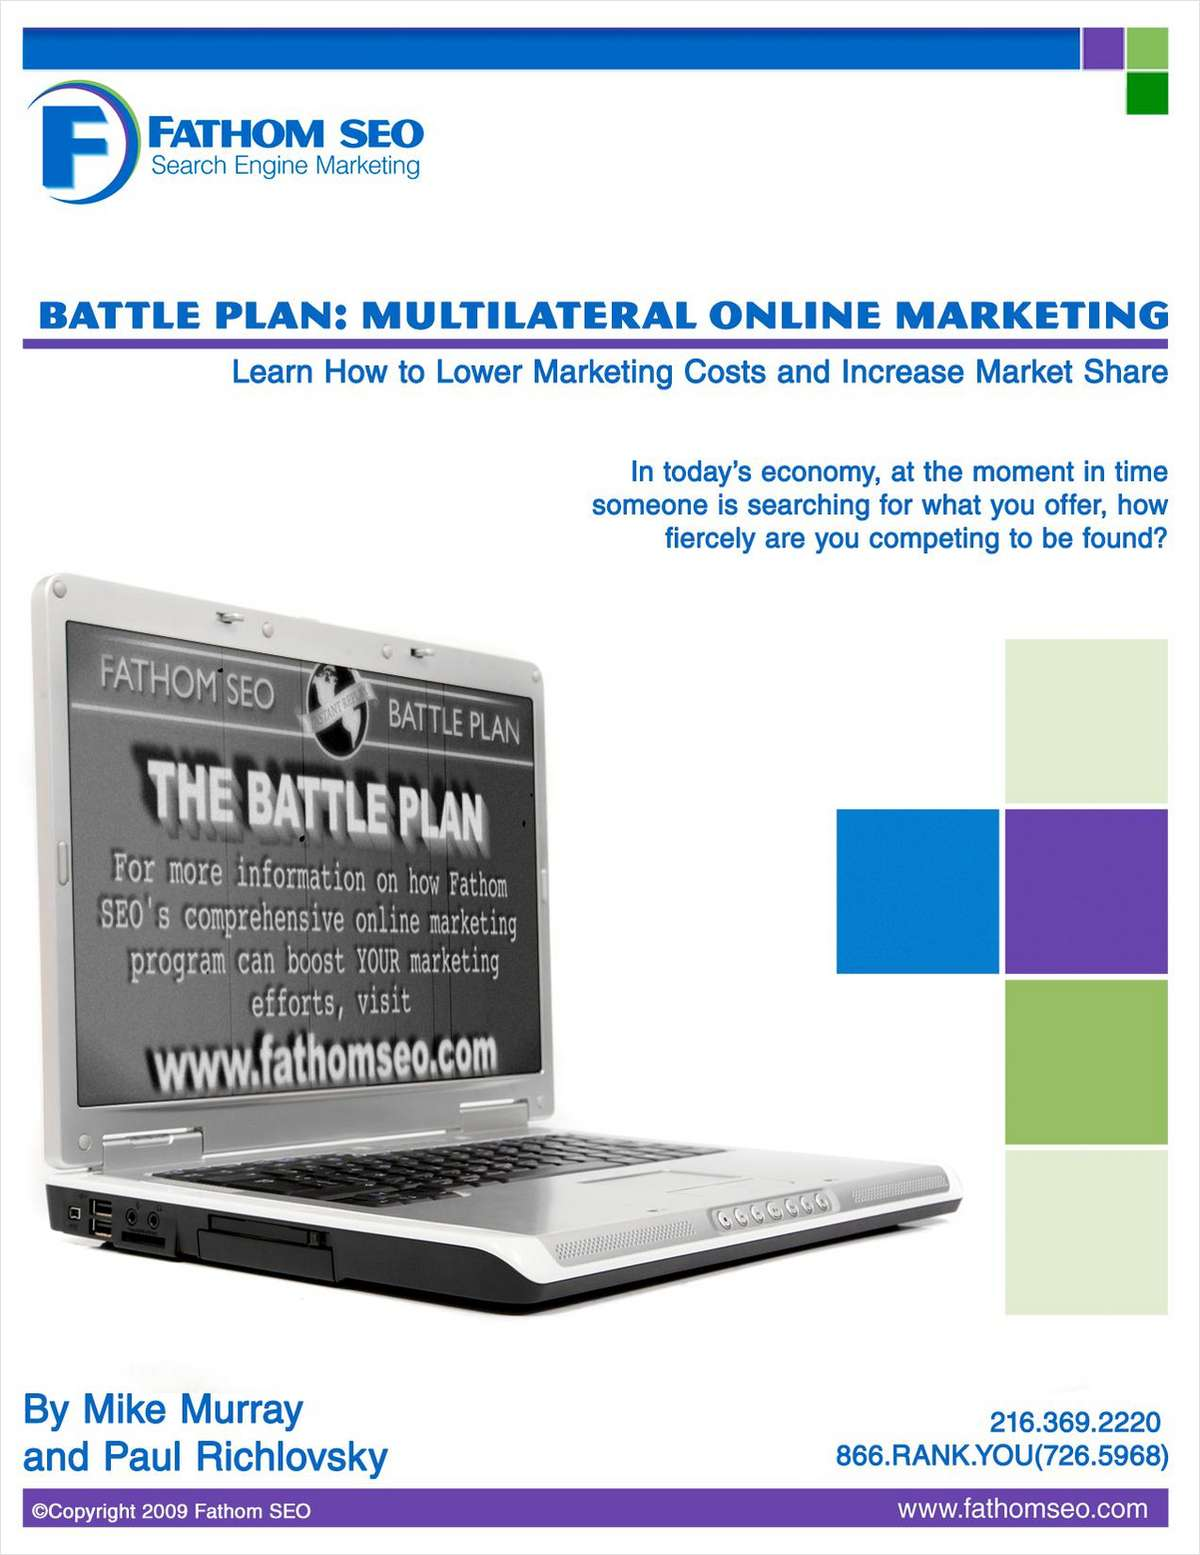 Battle Plan: Multilateral Online Marketing (MOM)